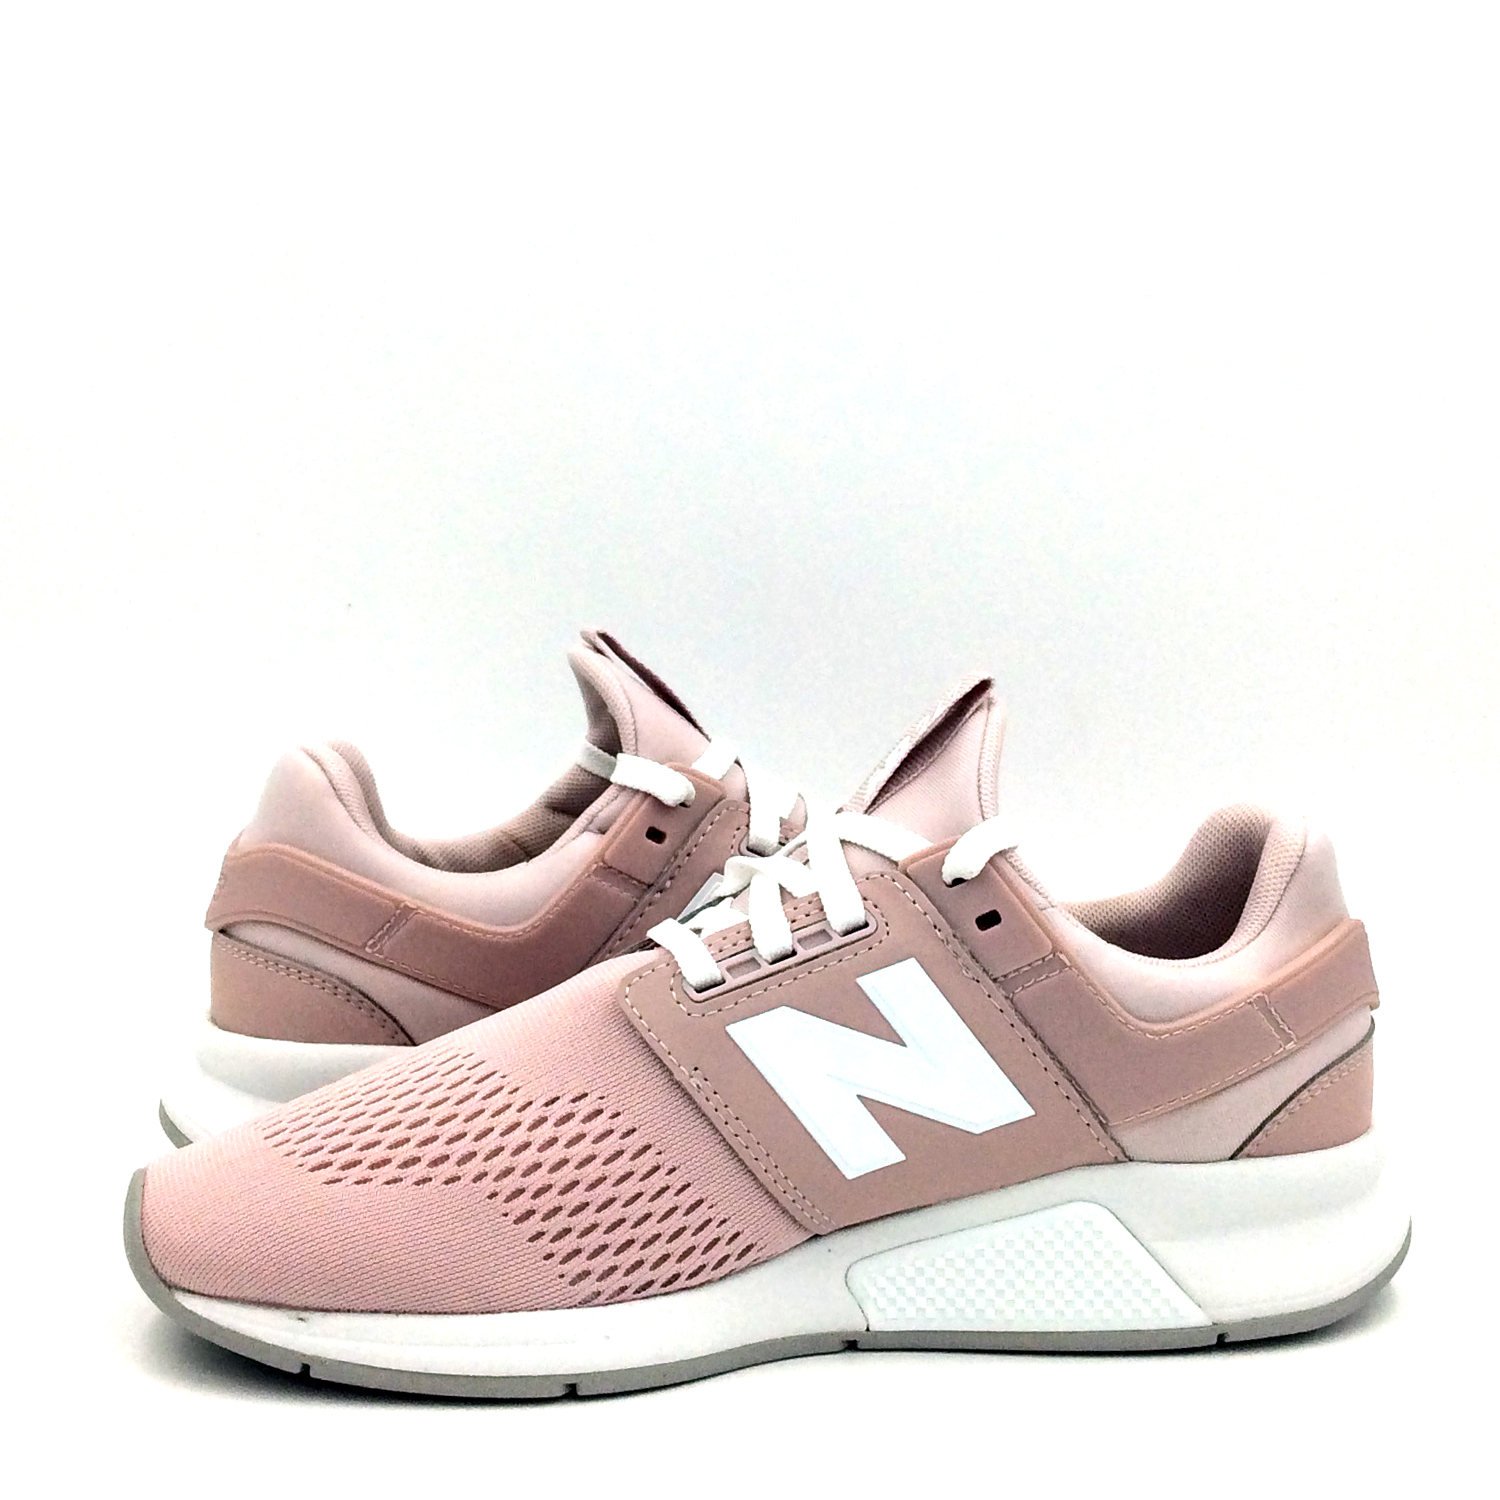 A unique and versatile NB lifestyle shoe designed for your 247 life. The  247v2 takes inspiration from the v1 and updates it for the present. 0f1667337c